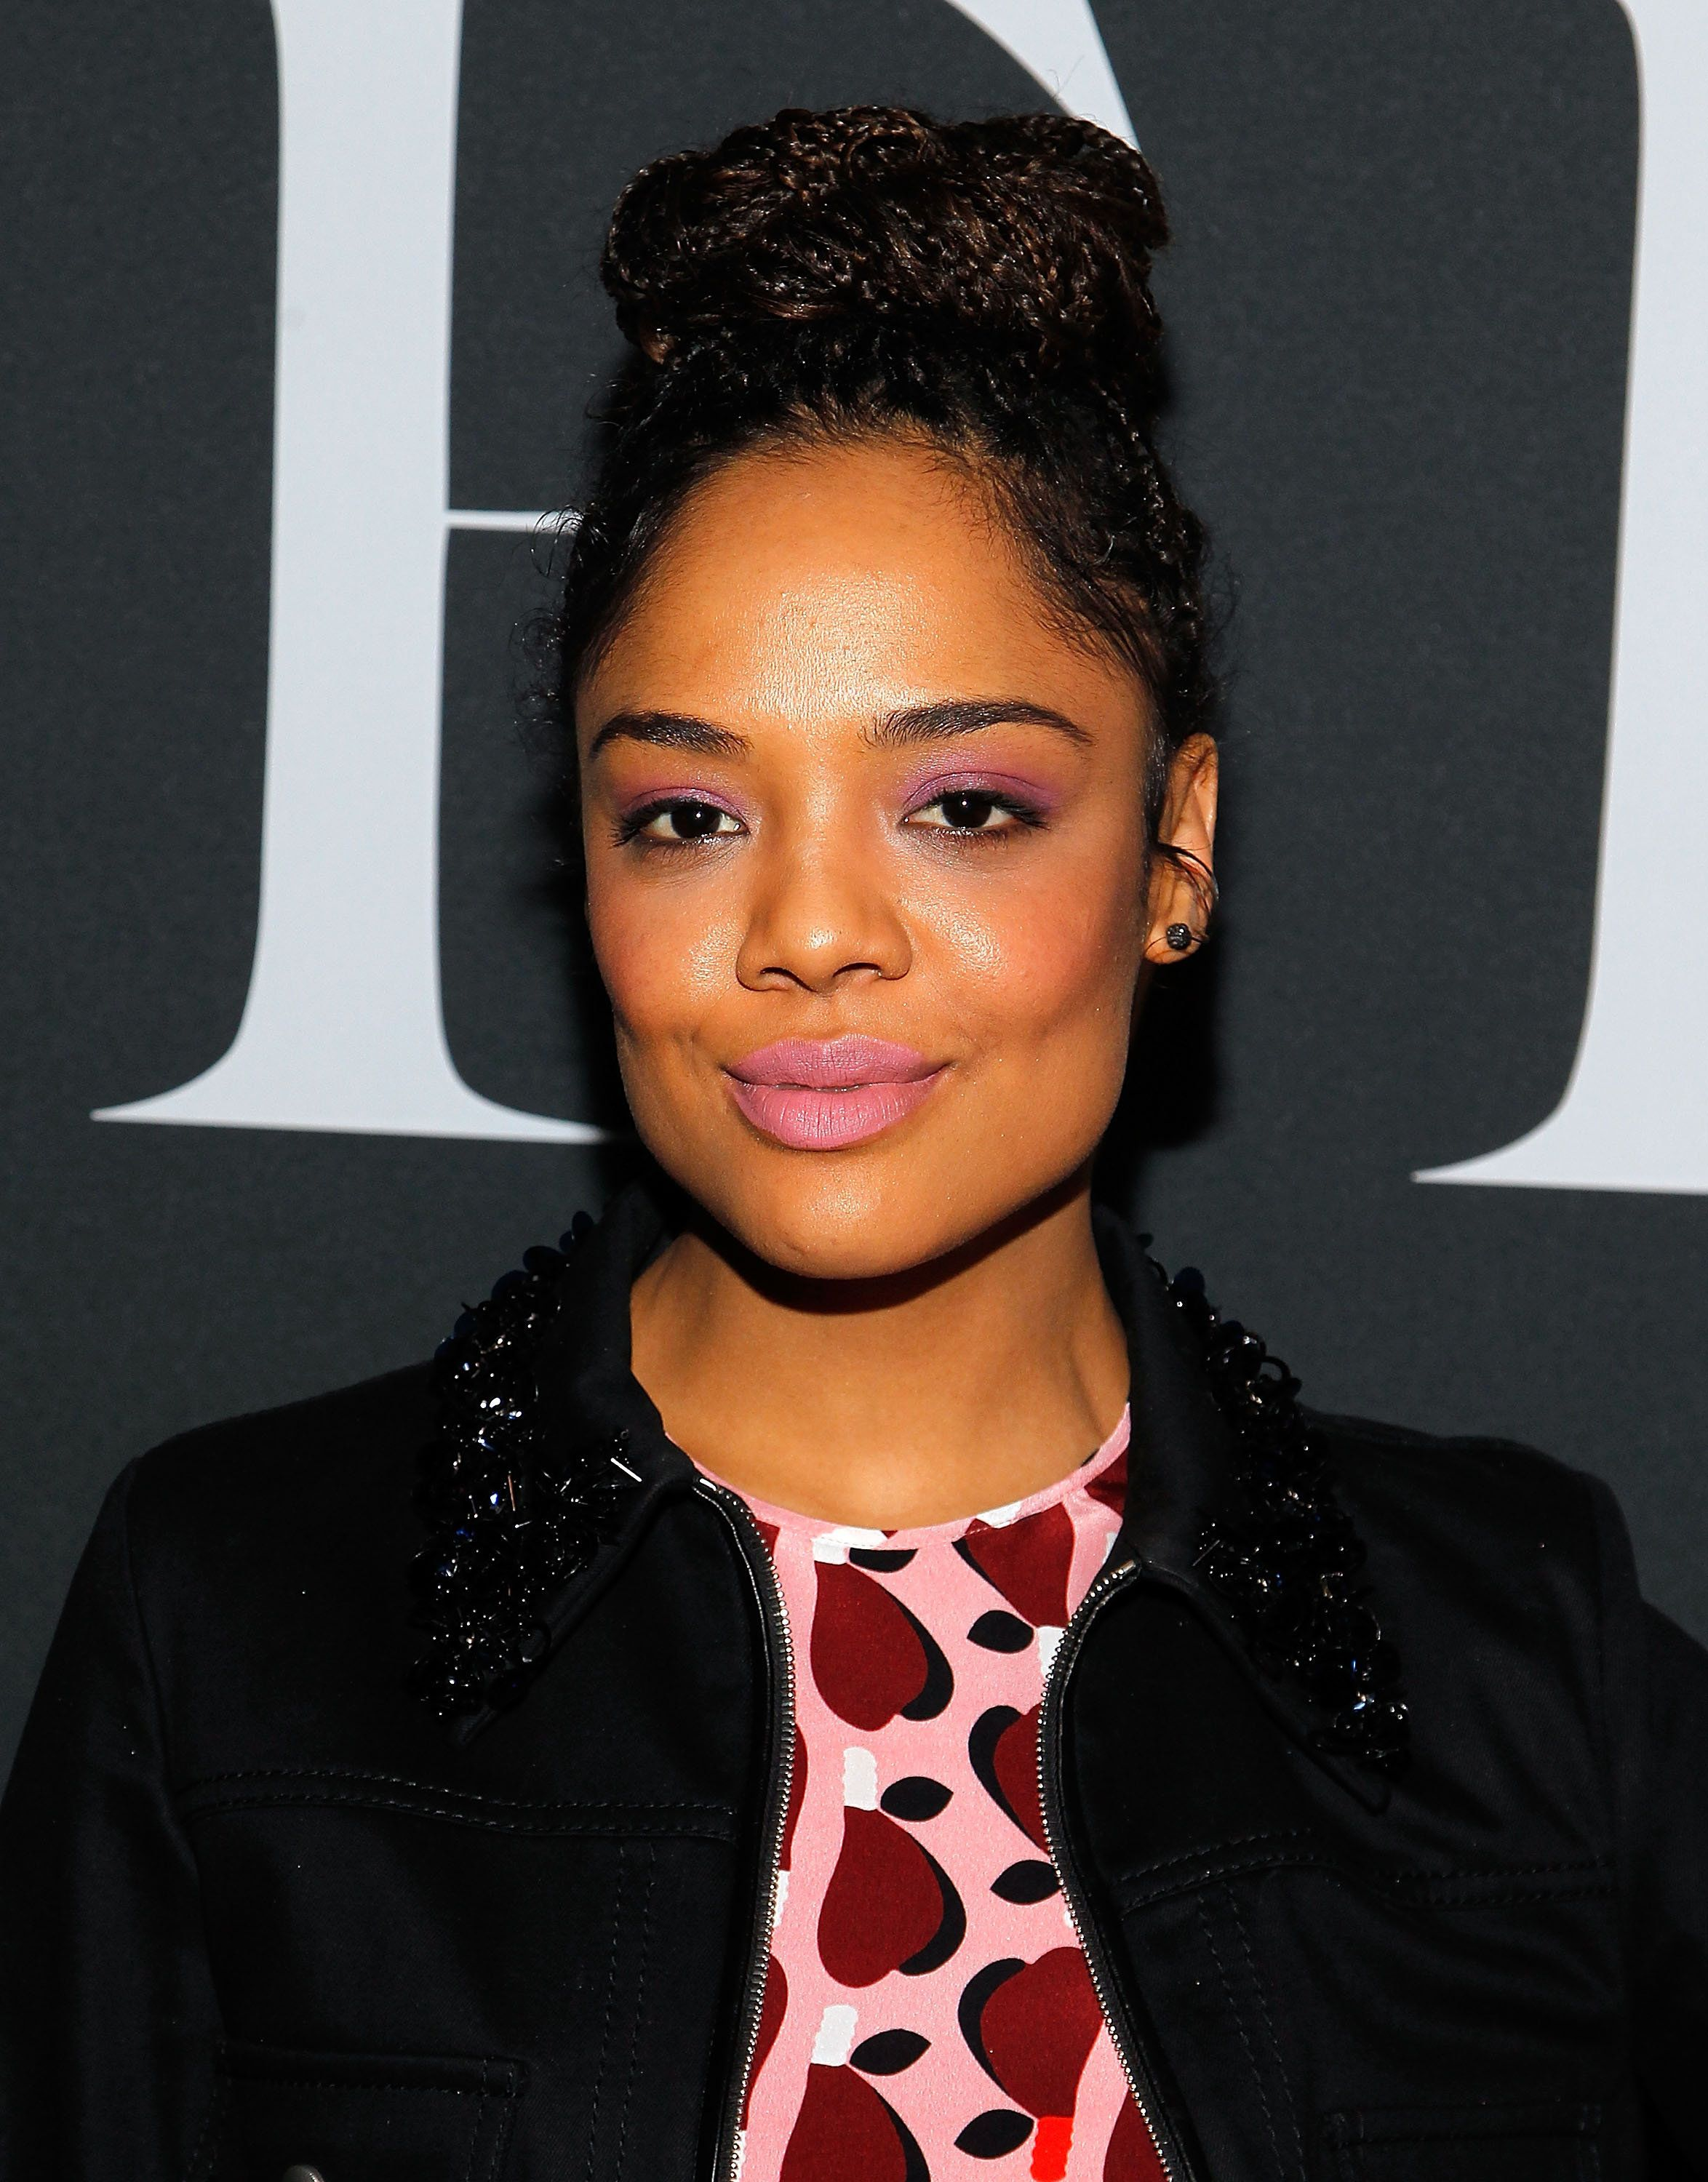 NEW YORK, NEW YORK - FEBRUARY 16:  Tessa Thompson attends the Miu Miu Tales 11 screening event during New York Fashion Week at EN Japanese Brasserie on February 16, 2016 in New York City.  (Photo by Paul Morigi/Getty Images)